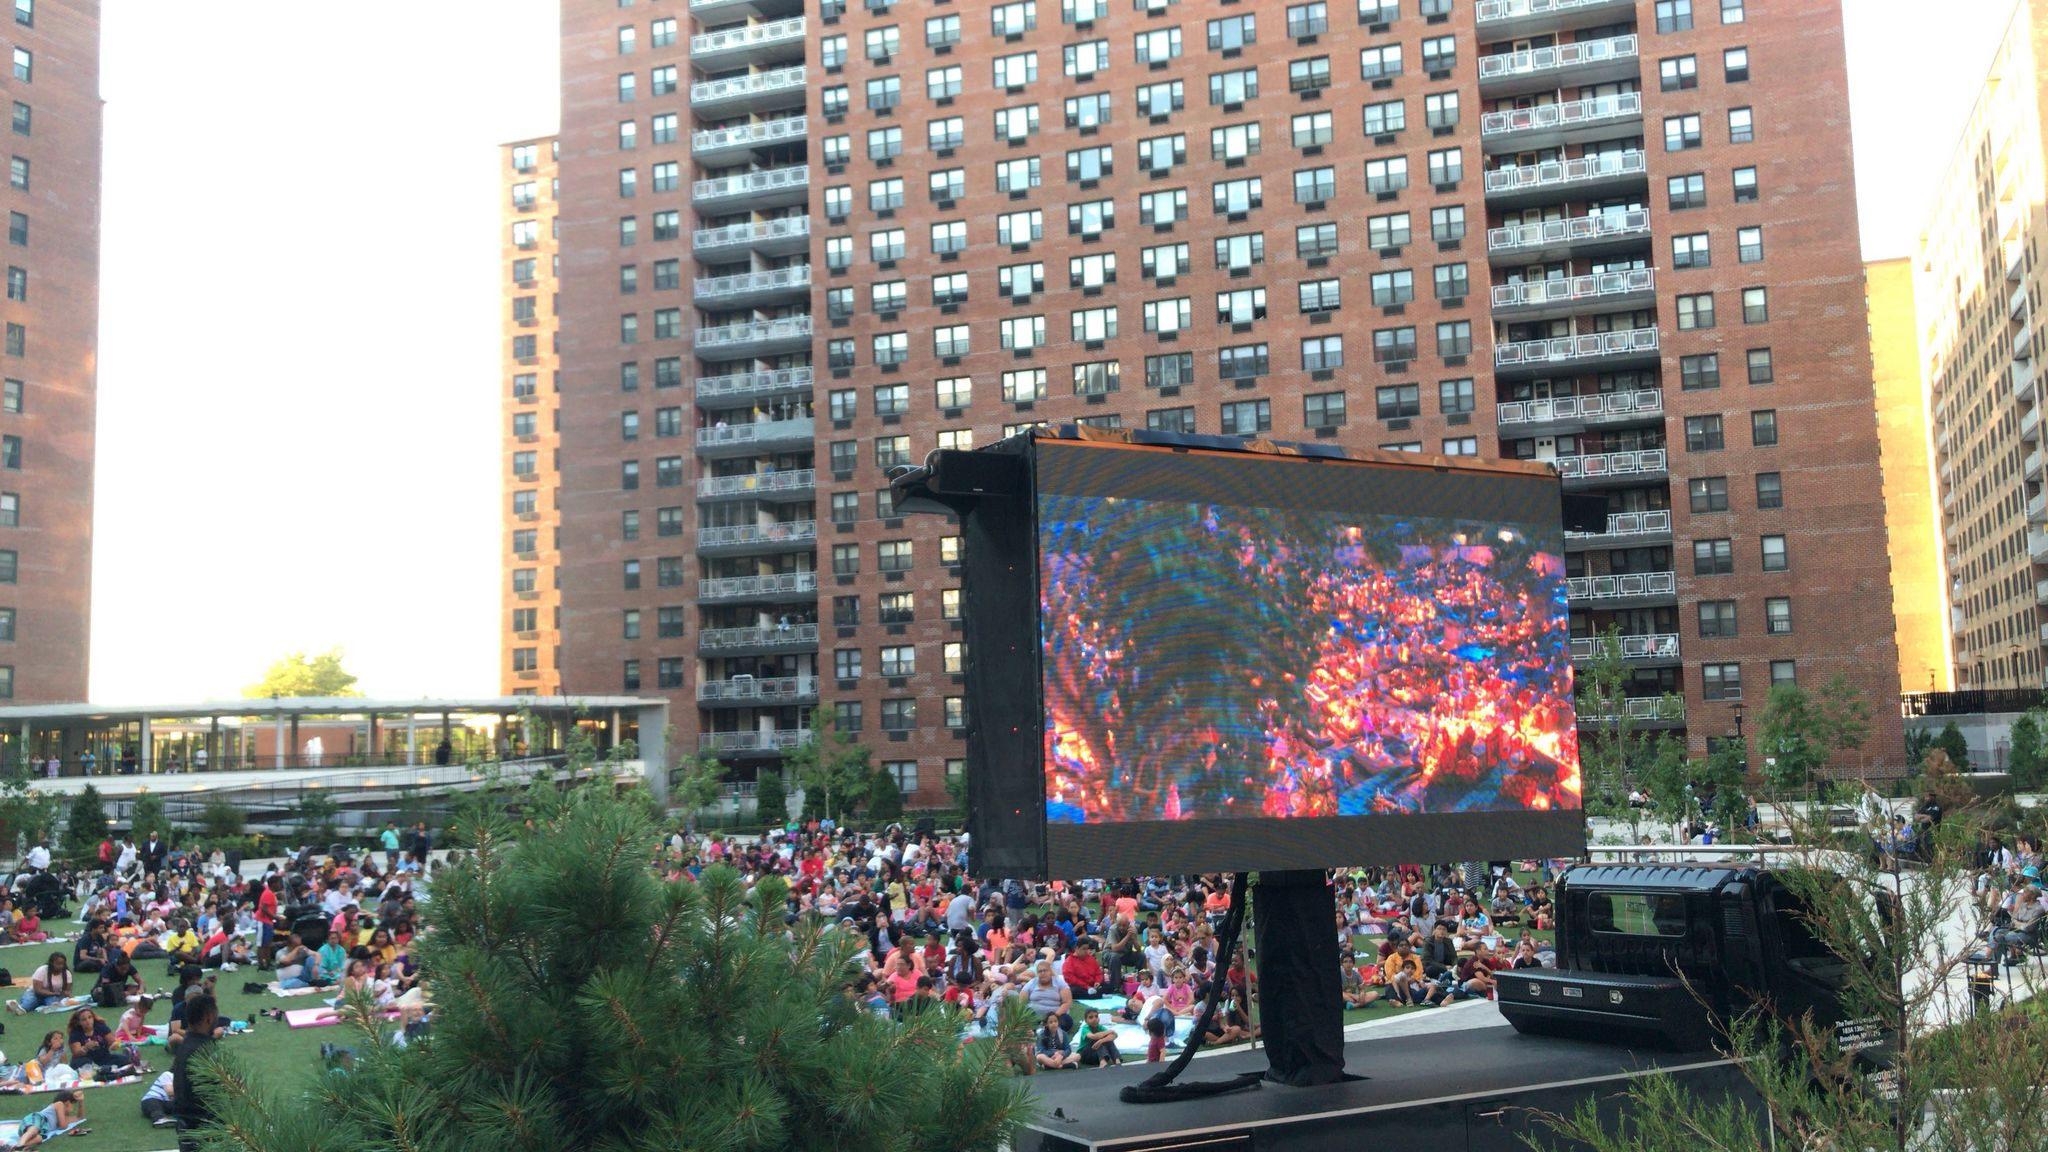 LeFrak City's amazing movie nights